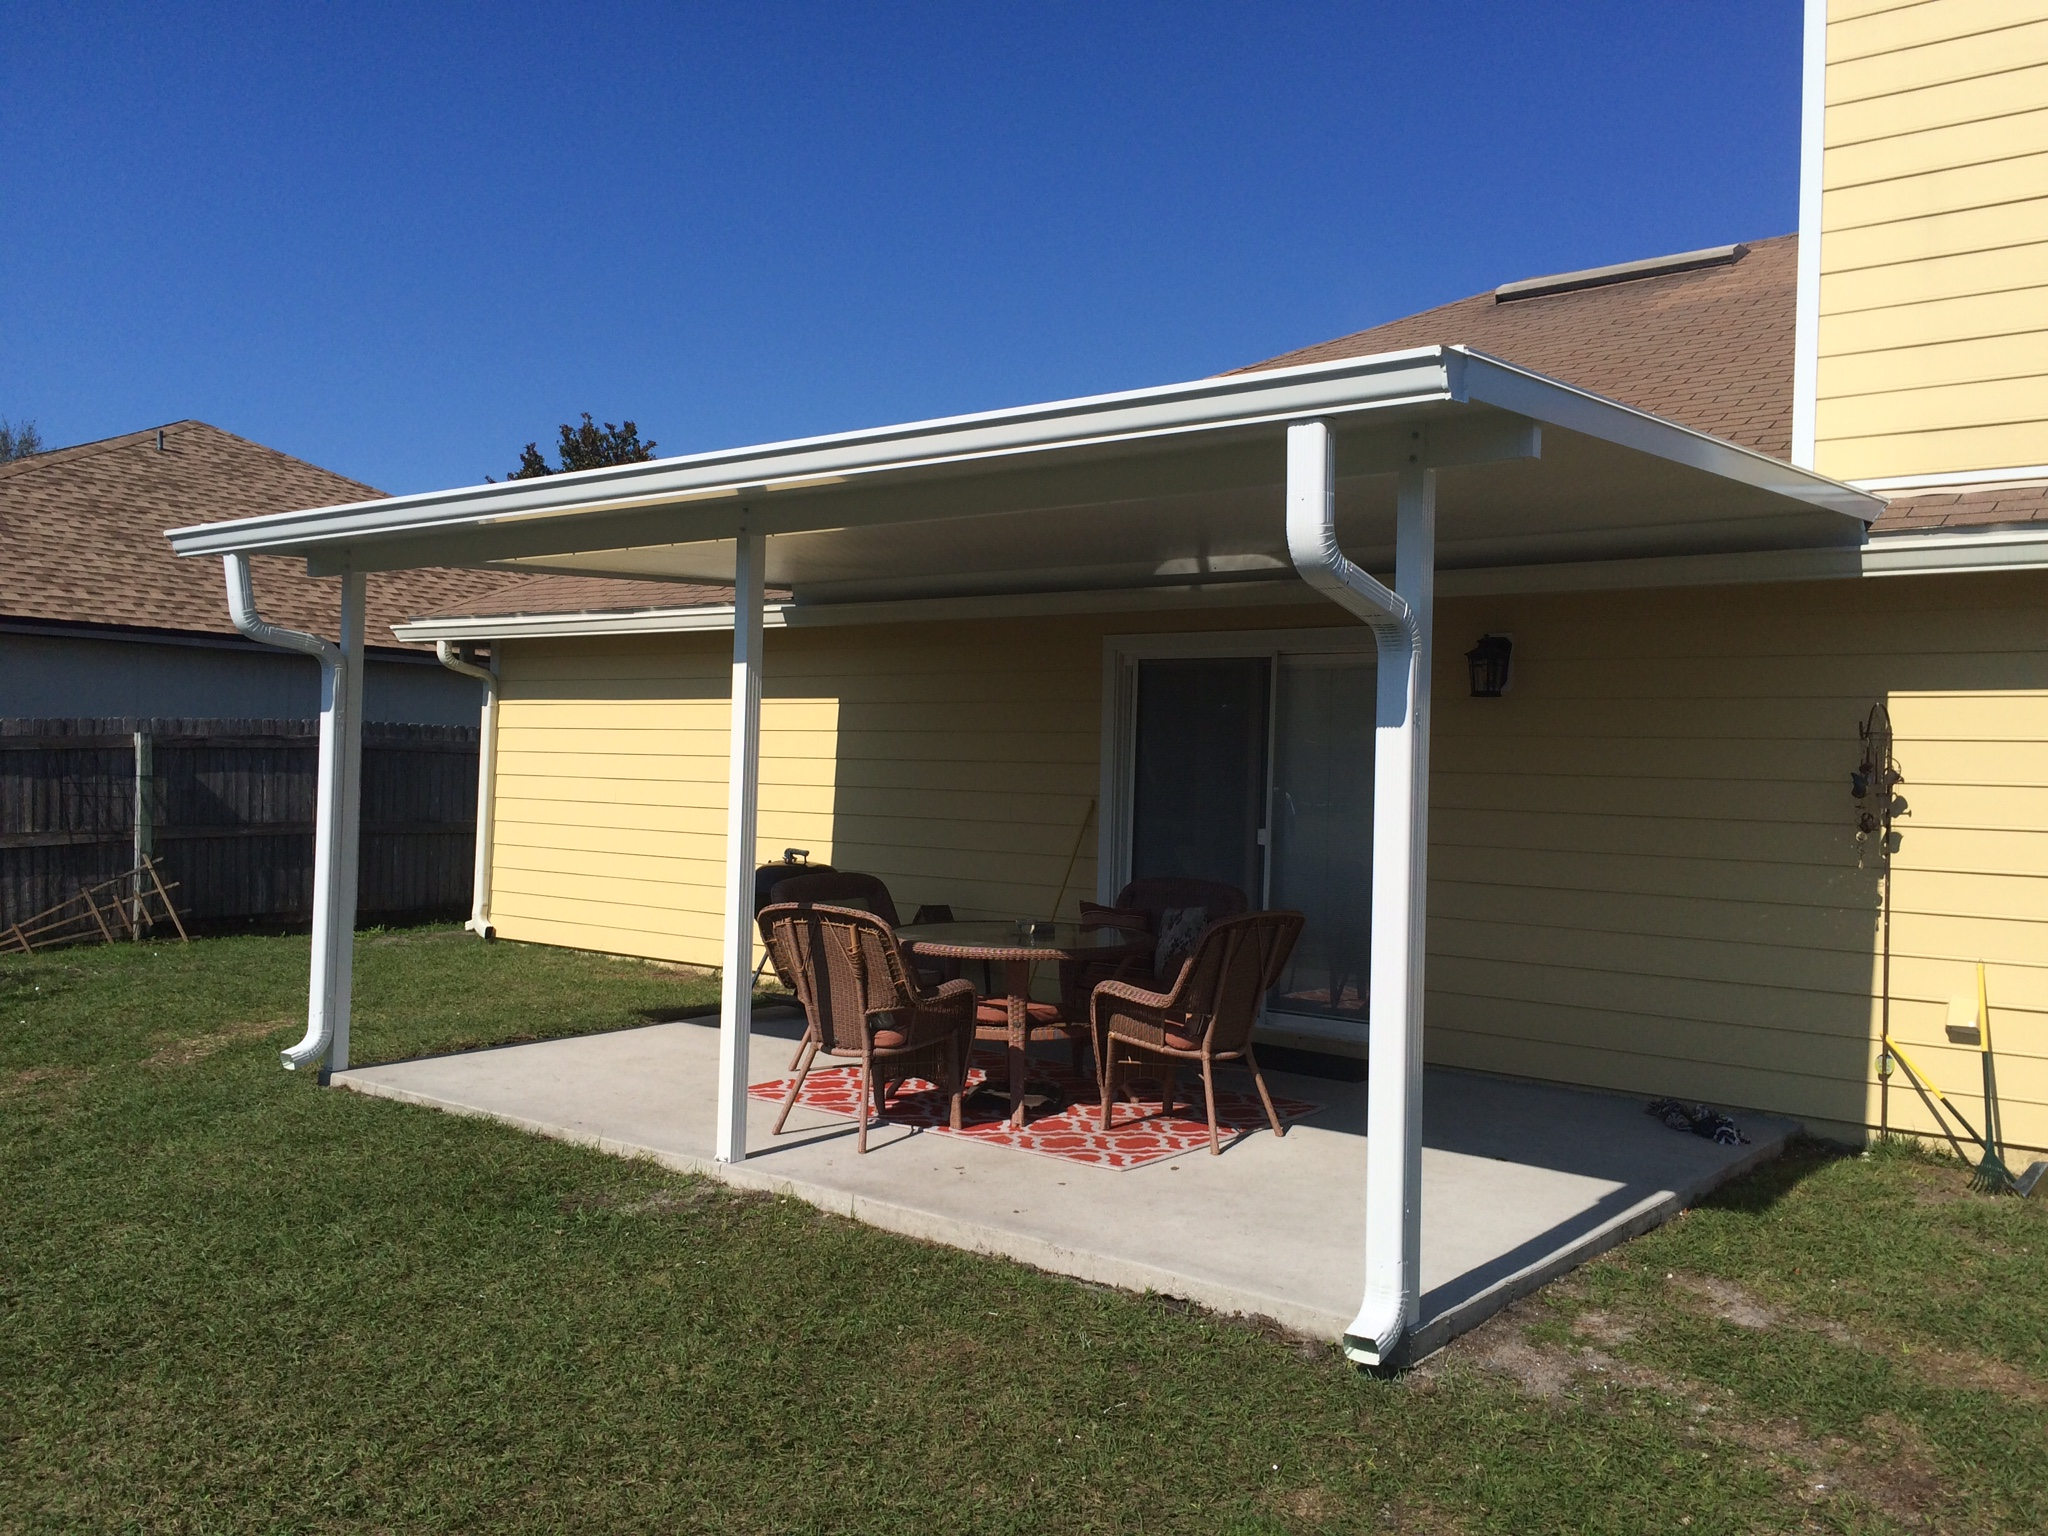 Patio Covers Carport Roofs M Daigle Sons